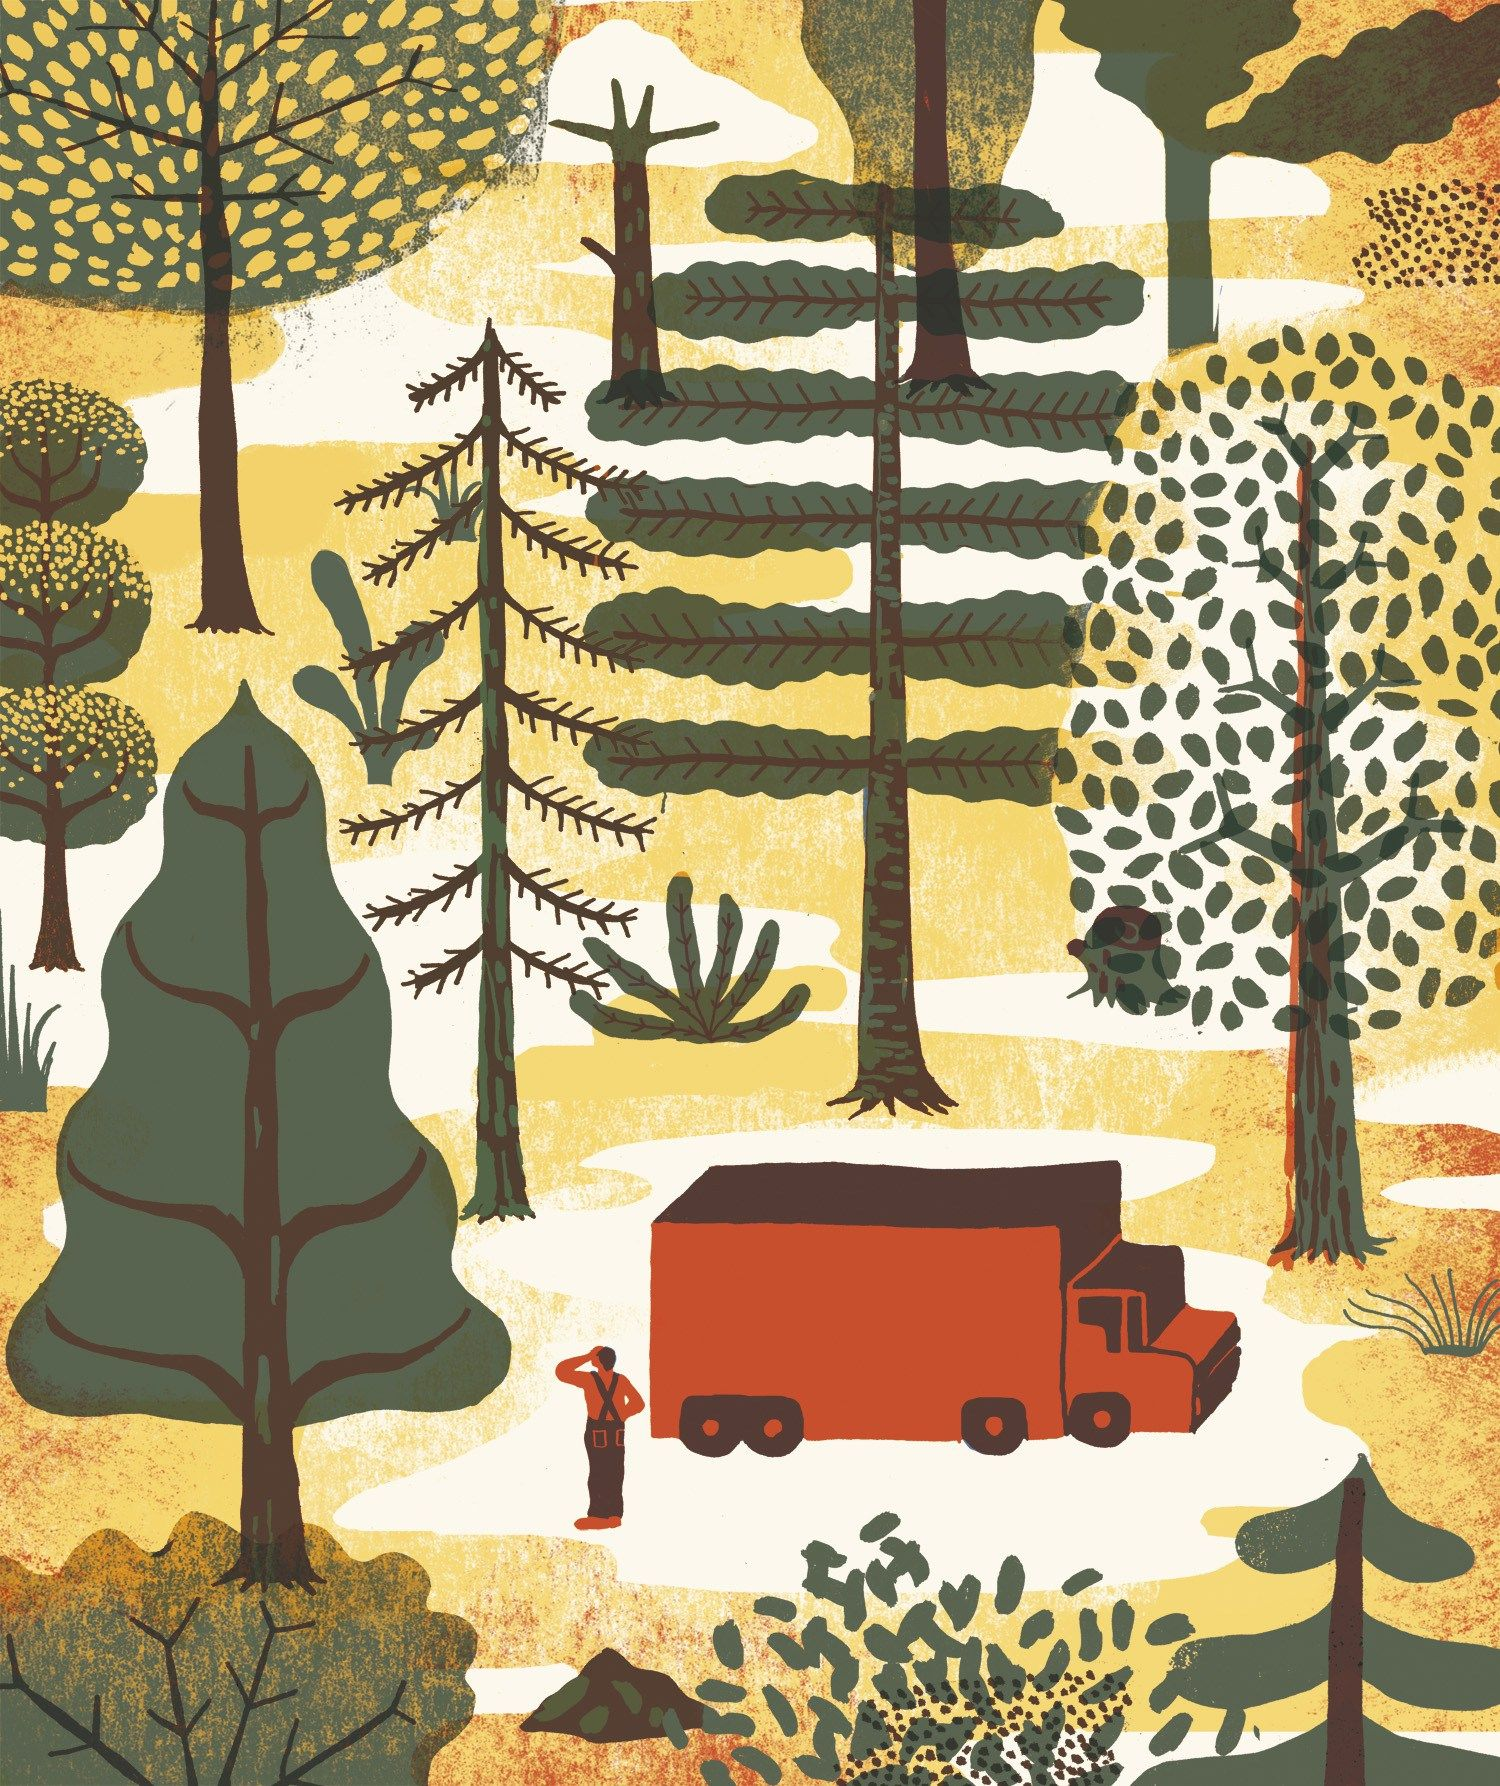 Really nice style from illustrator Sarah Mazzetti, spotted her work on the website for the Green Man music festival.